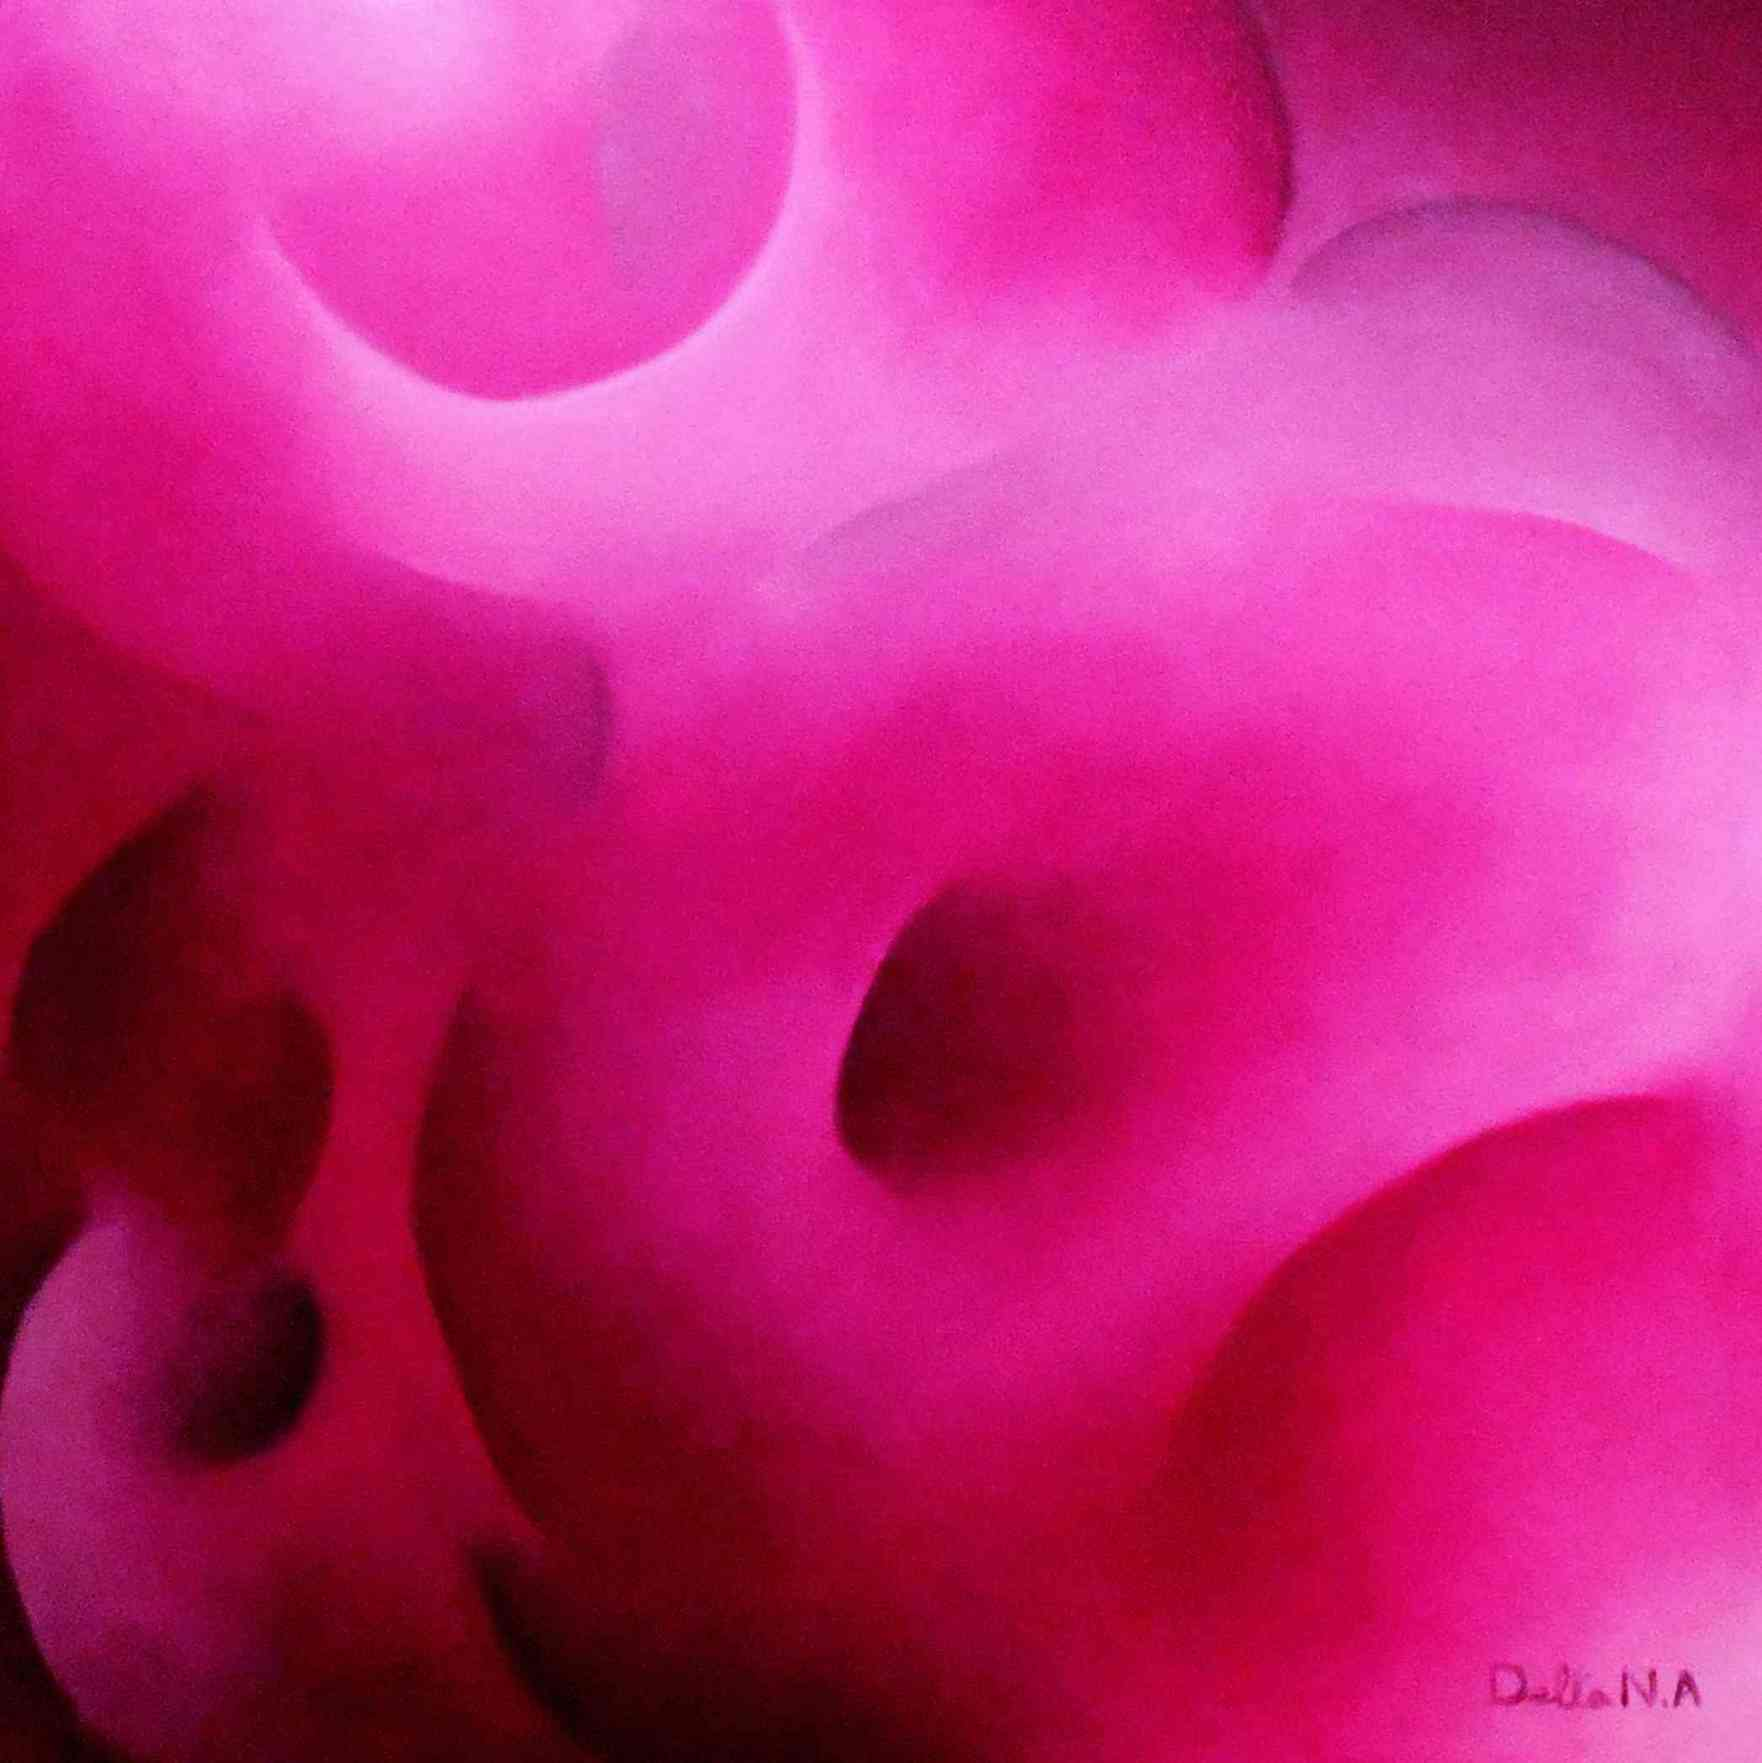 Armonia Magenta, 50 x 50 cm, Oil on Canvas 2014 Delta N.A.